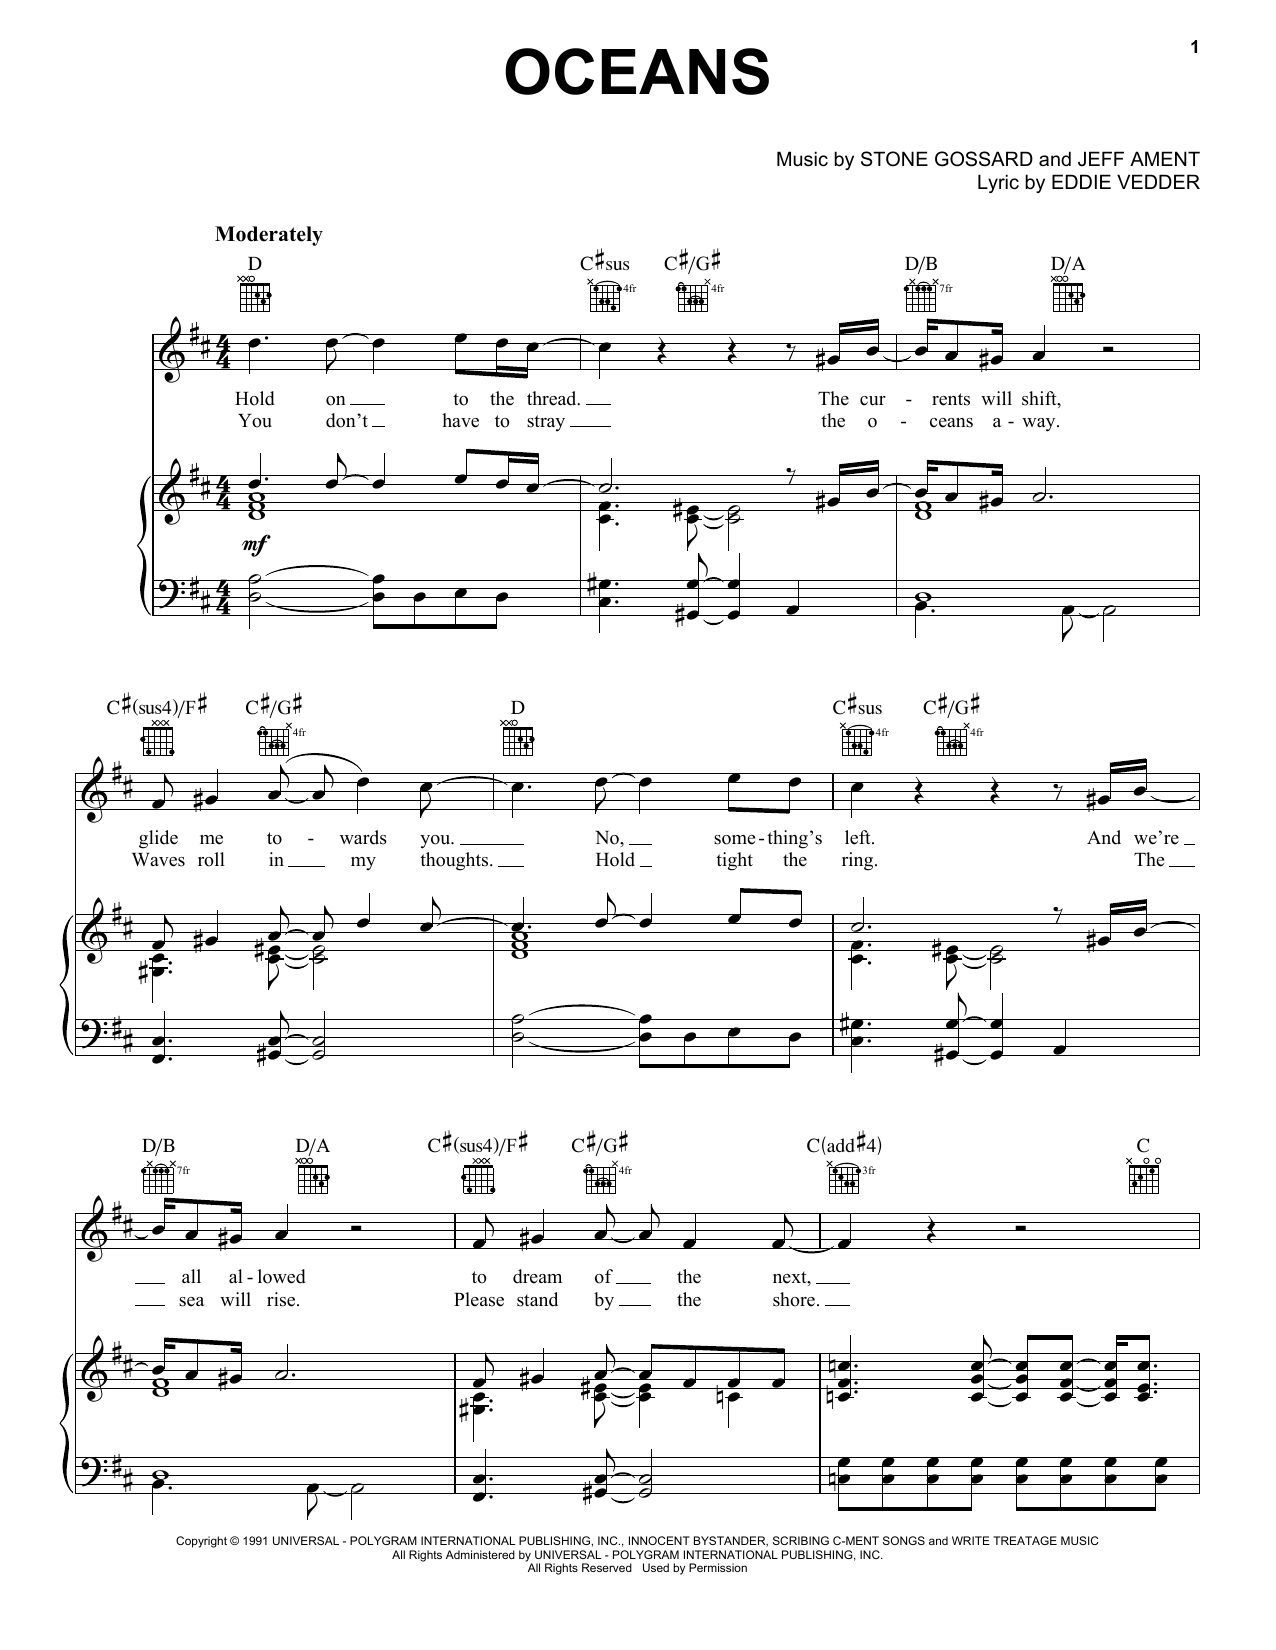 Pearl Jam 'Oceans' Sheet Music Notes, Chords | Download Printable Piano,  Vocal & Guitar (Right-Hand Melody) - SKU: 170172